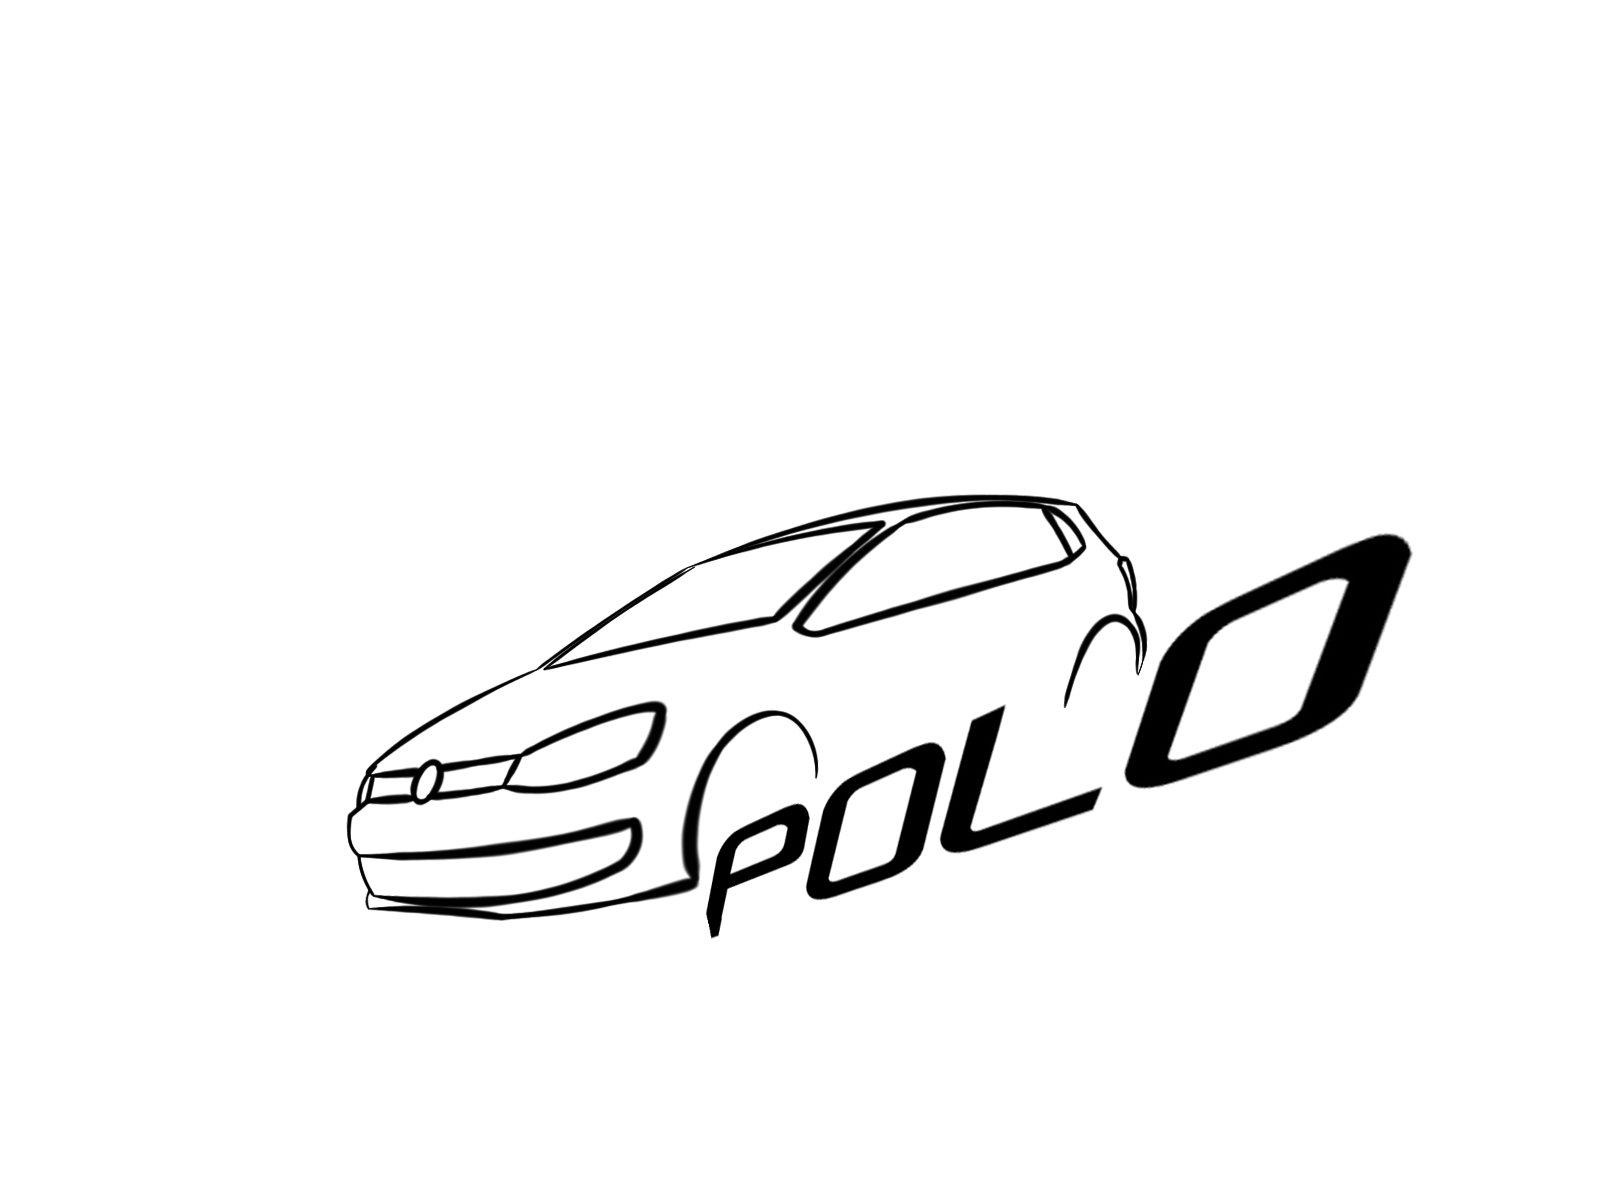 Image For > Polo Logo Wallpapers